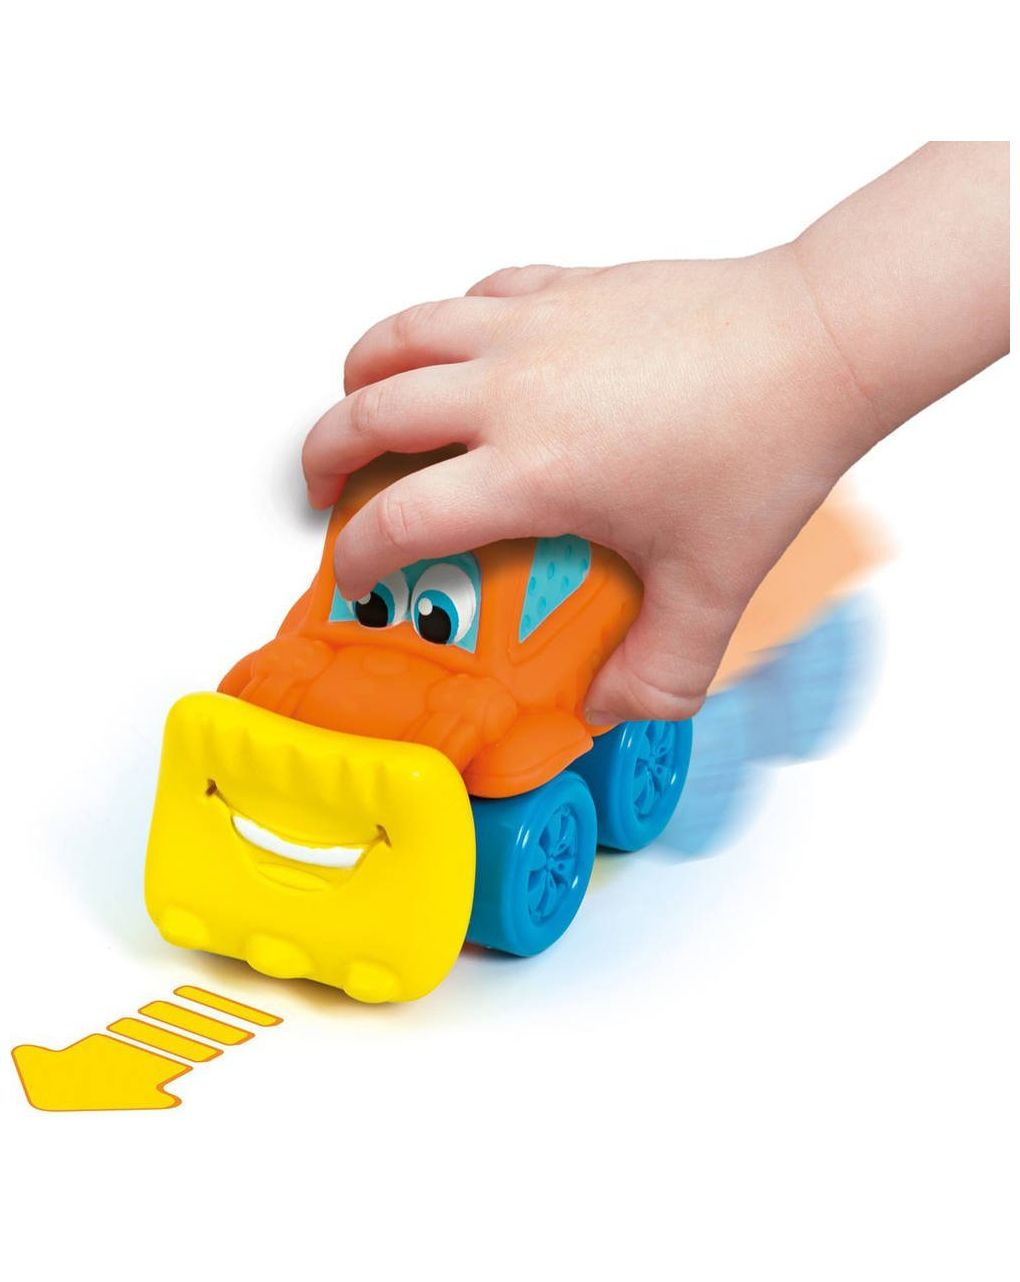 Baby car soft & go - Clementoni